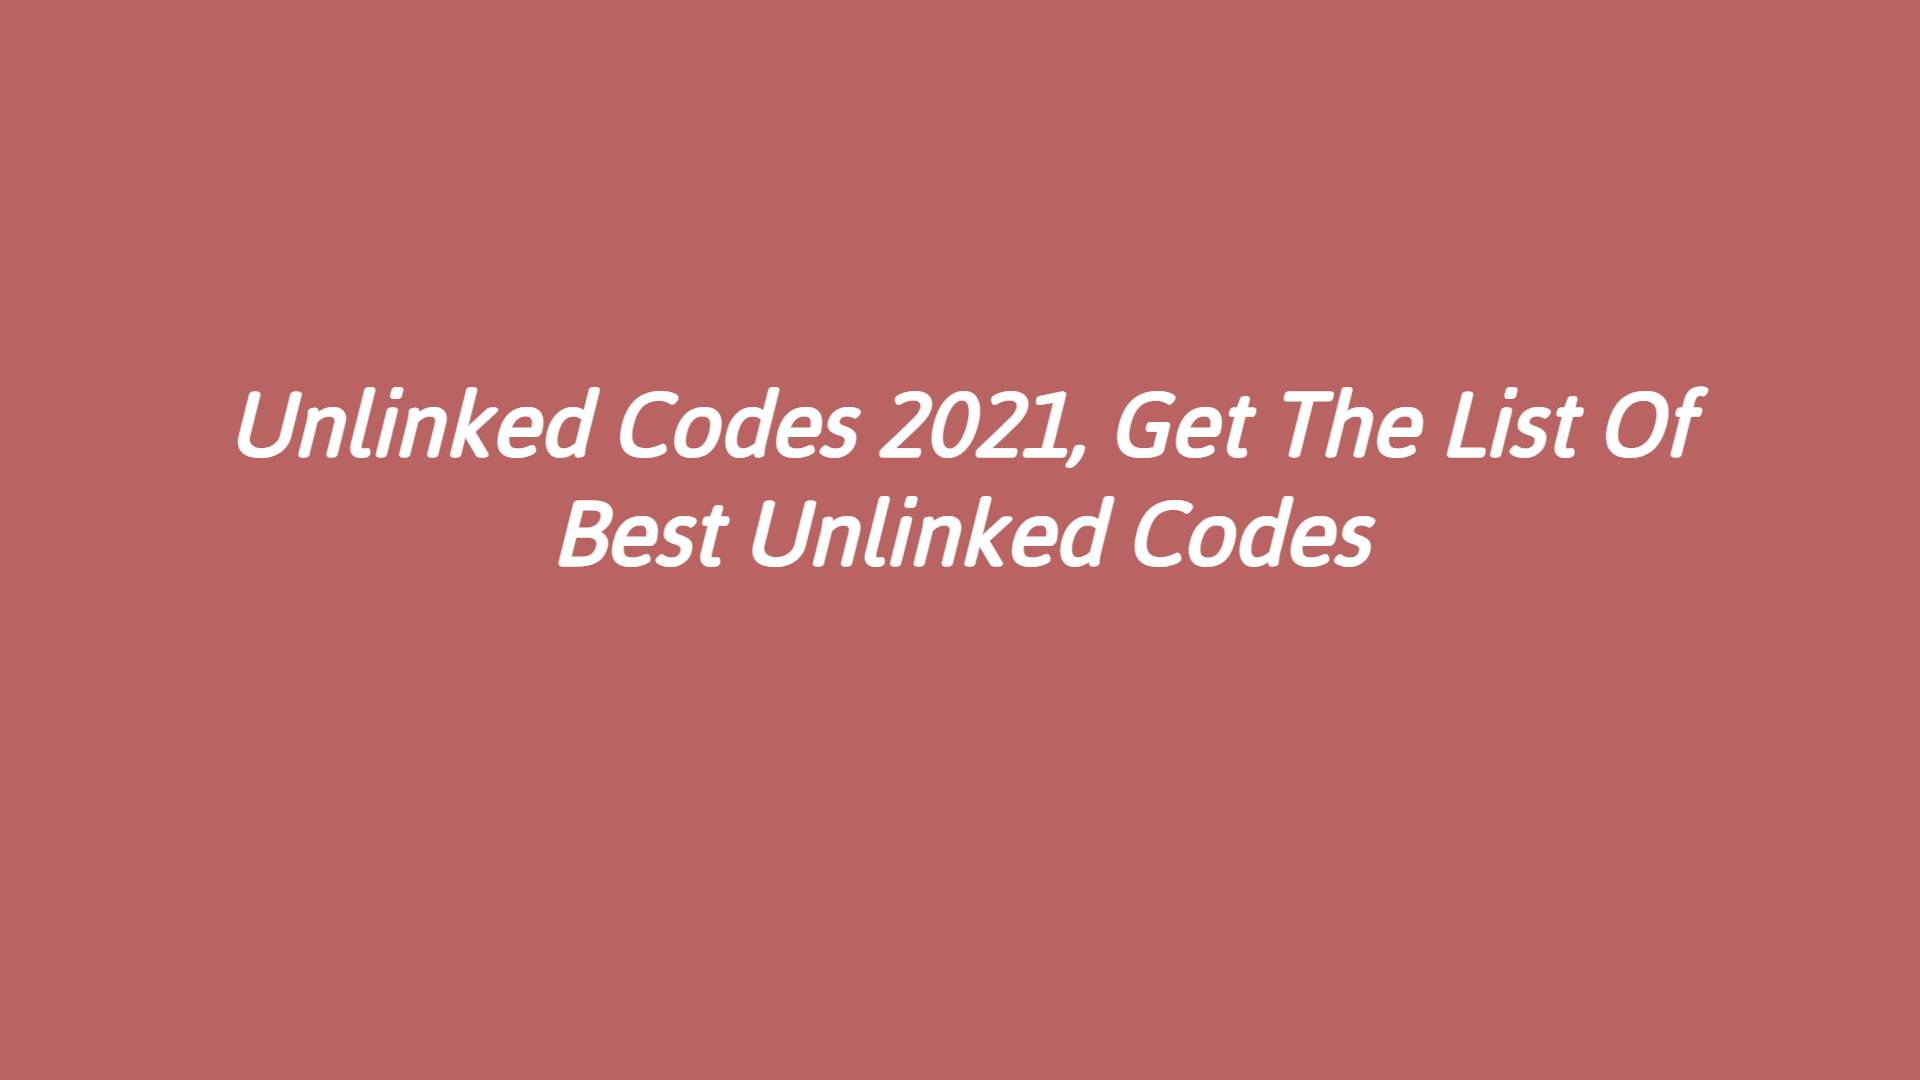 Unlinked Codes 2021, Get The List Of Best Unlinked Codes